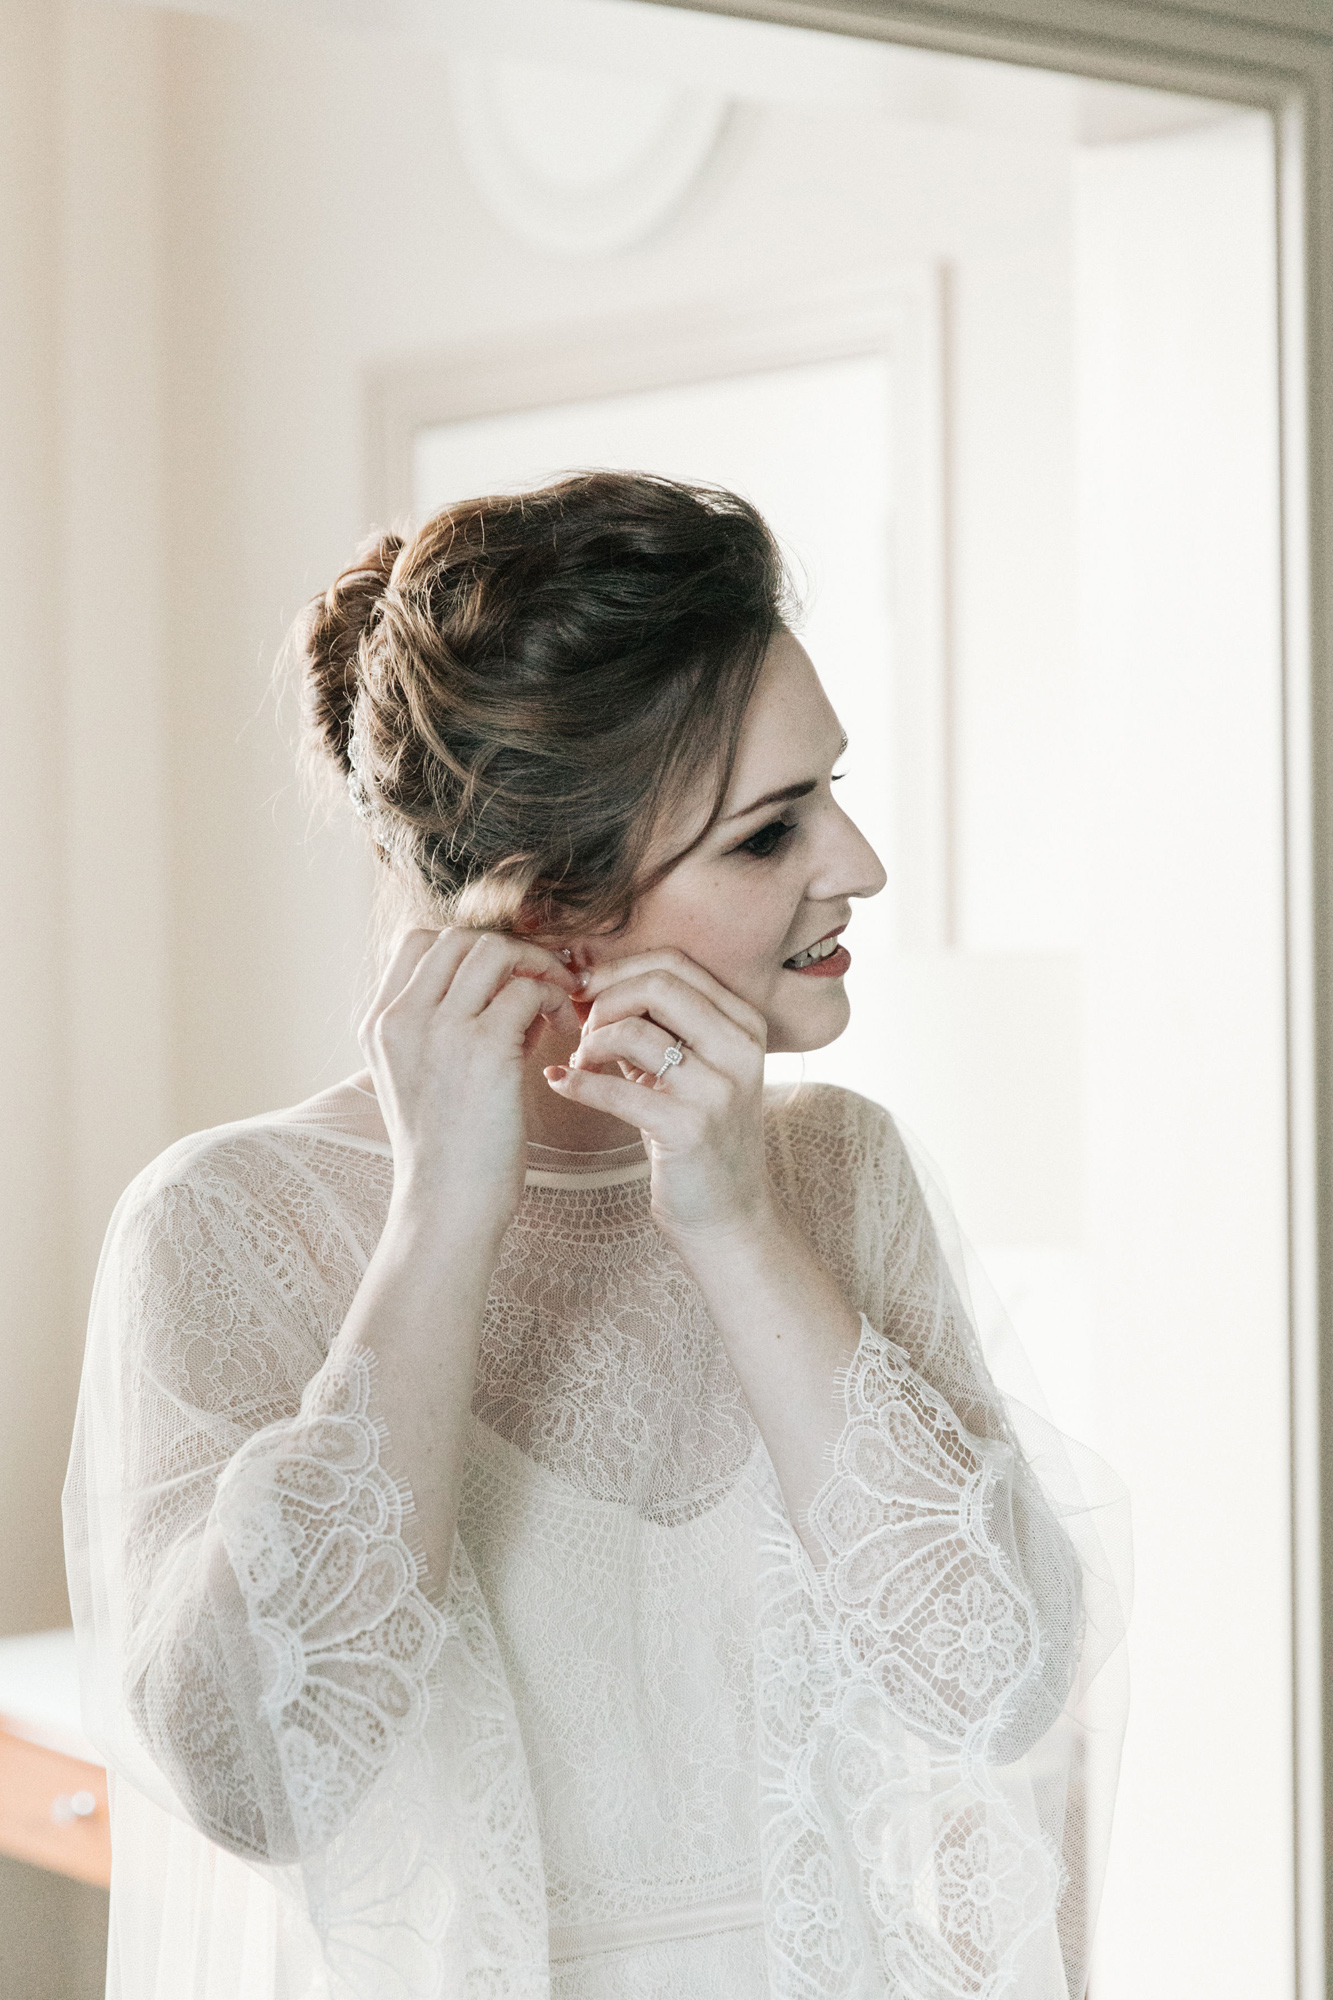 Kathryn-Kate-Beaumont-Astrantia-Lace-Wedding-Dress-Cape-Veil-Sheffield-Circus-Wedding-7.jpg